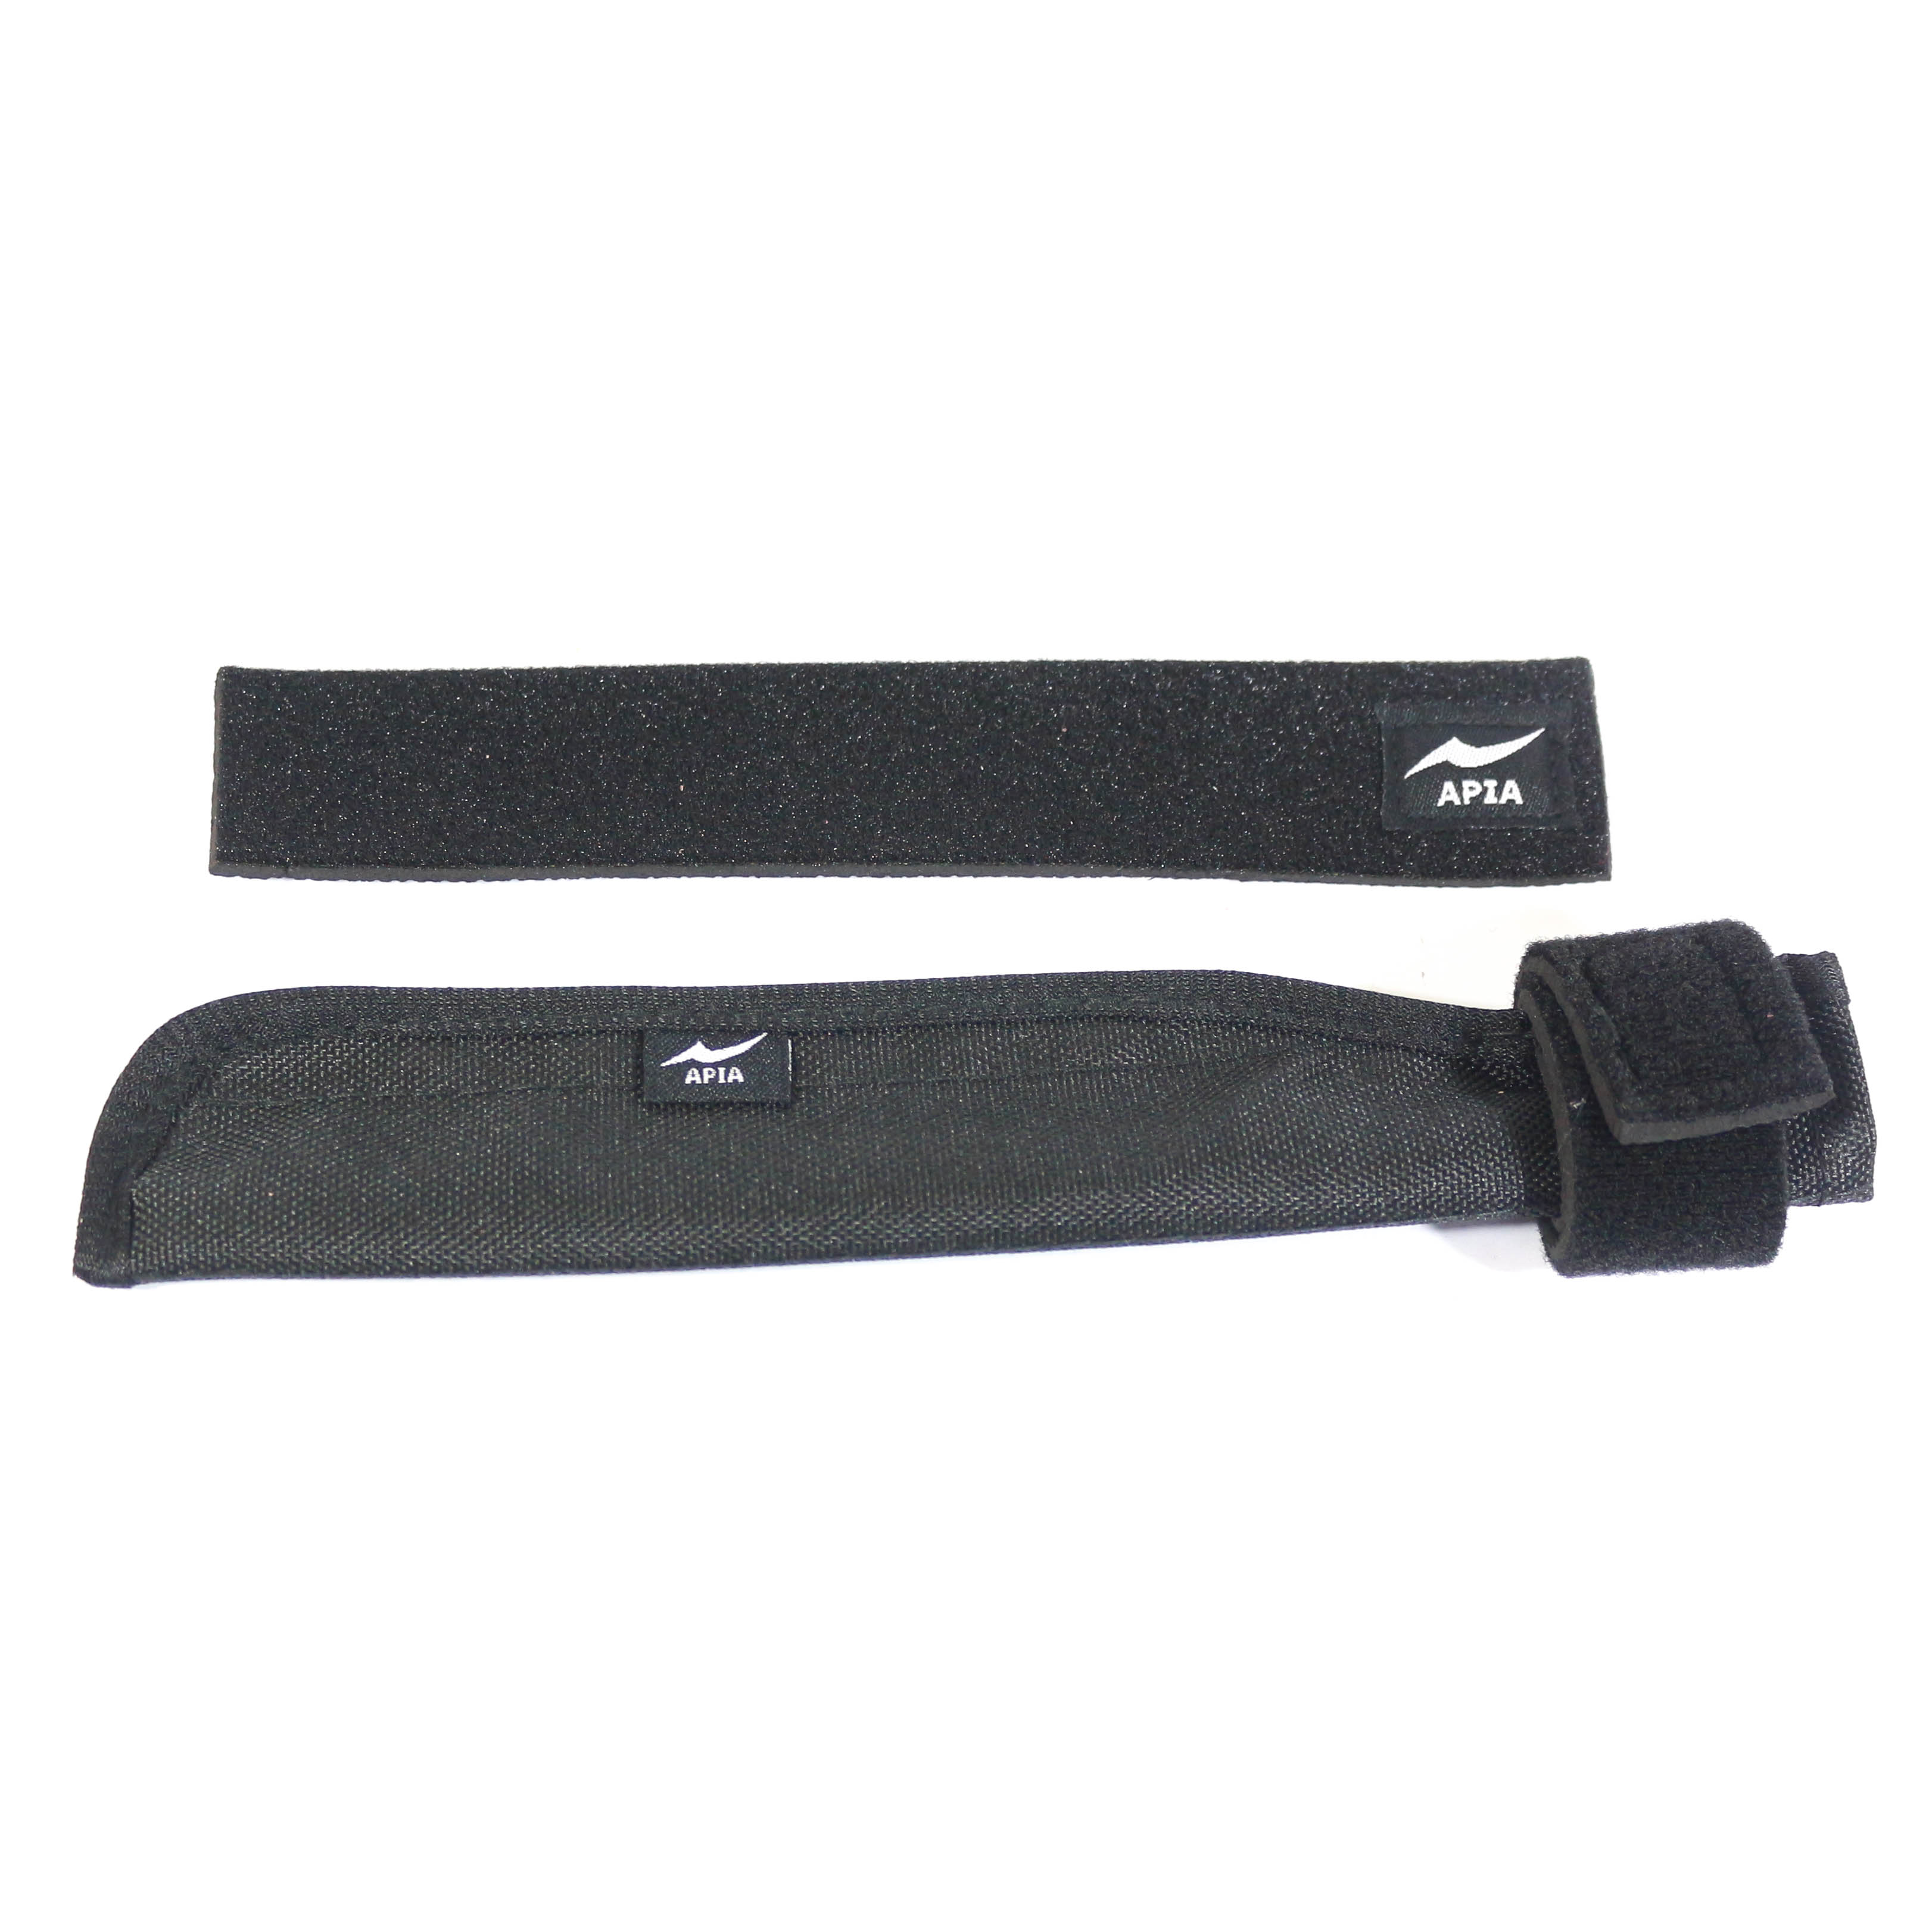 Apia Rod Tip Cover Protector Black (6586)